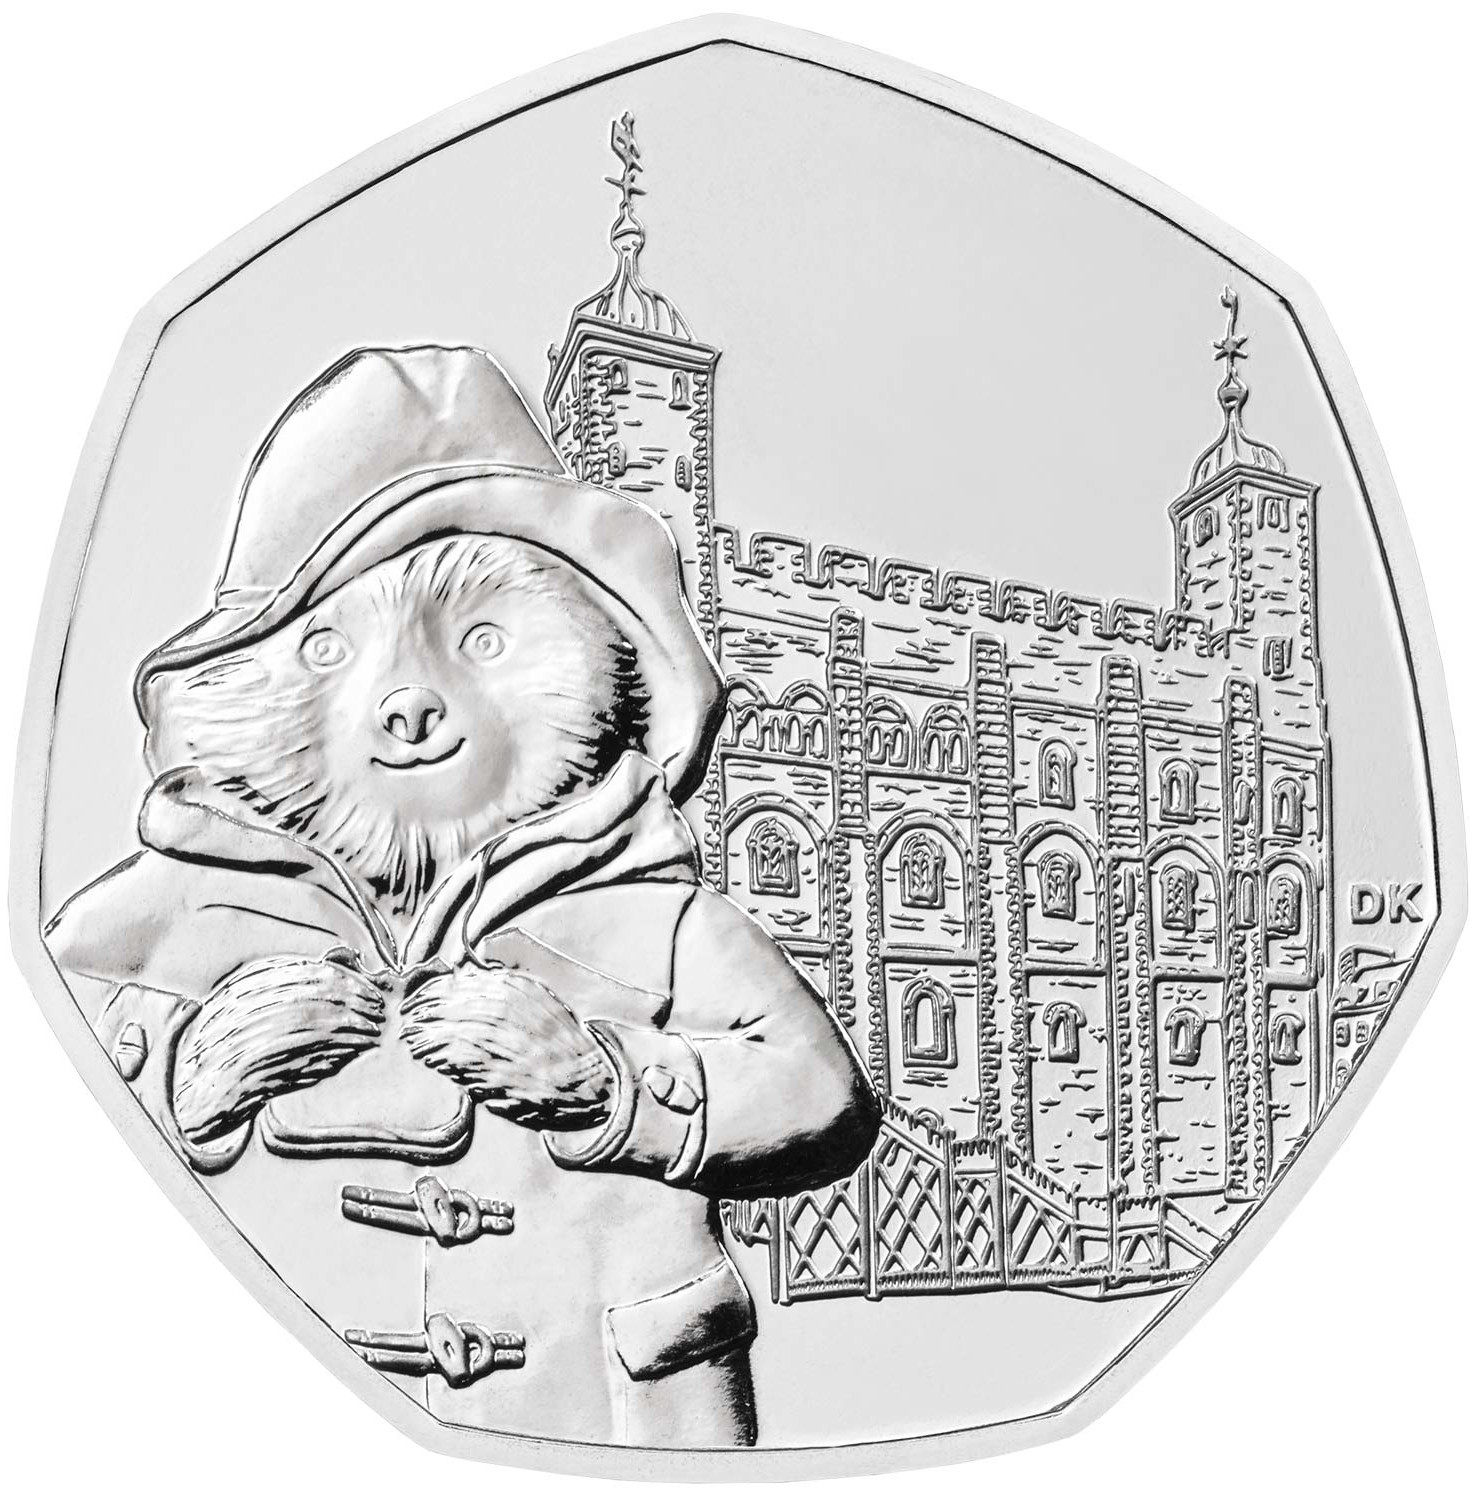 Fifty Pence 2019 Paddington Bear at the Tower: Photo Paddington at the Tower 2019 United Kingdom Brilliant Uncirculated Coin